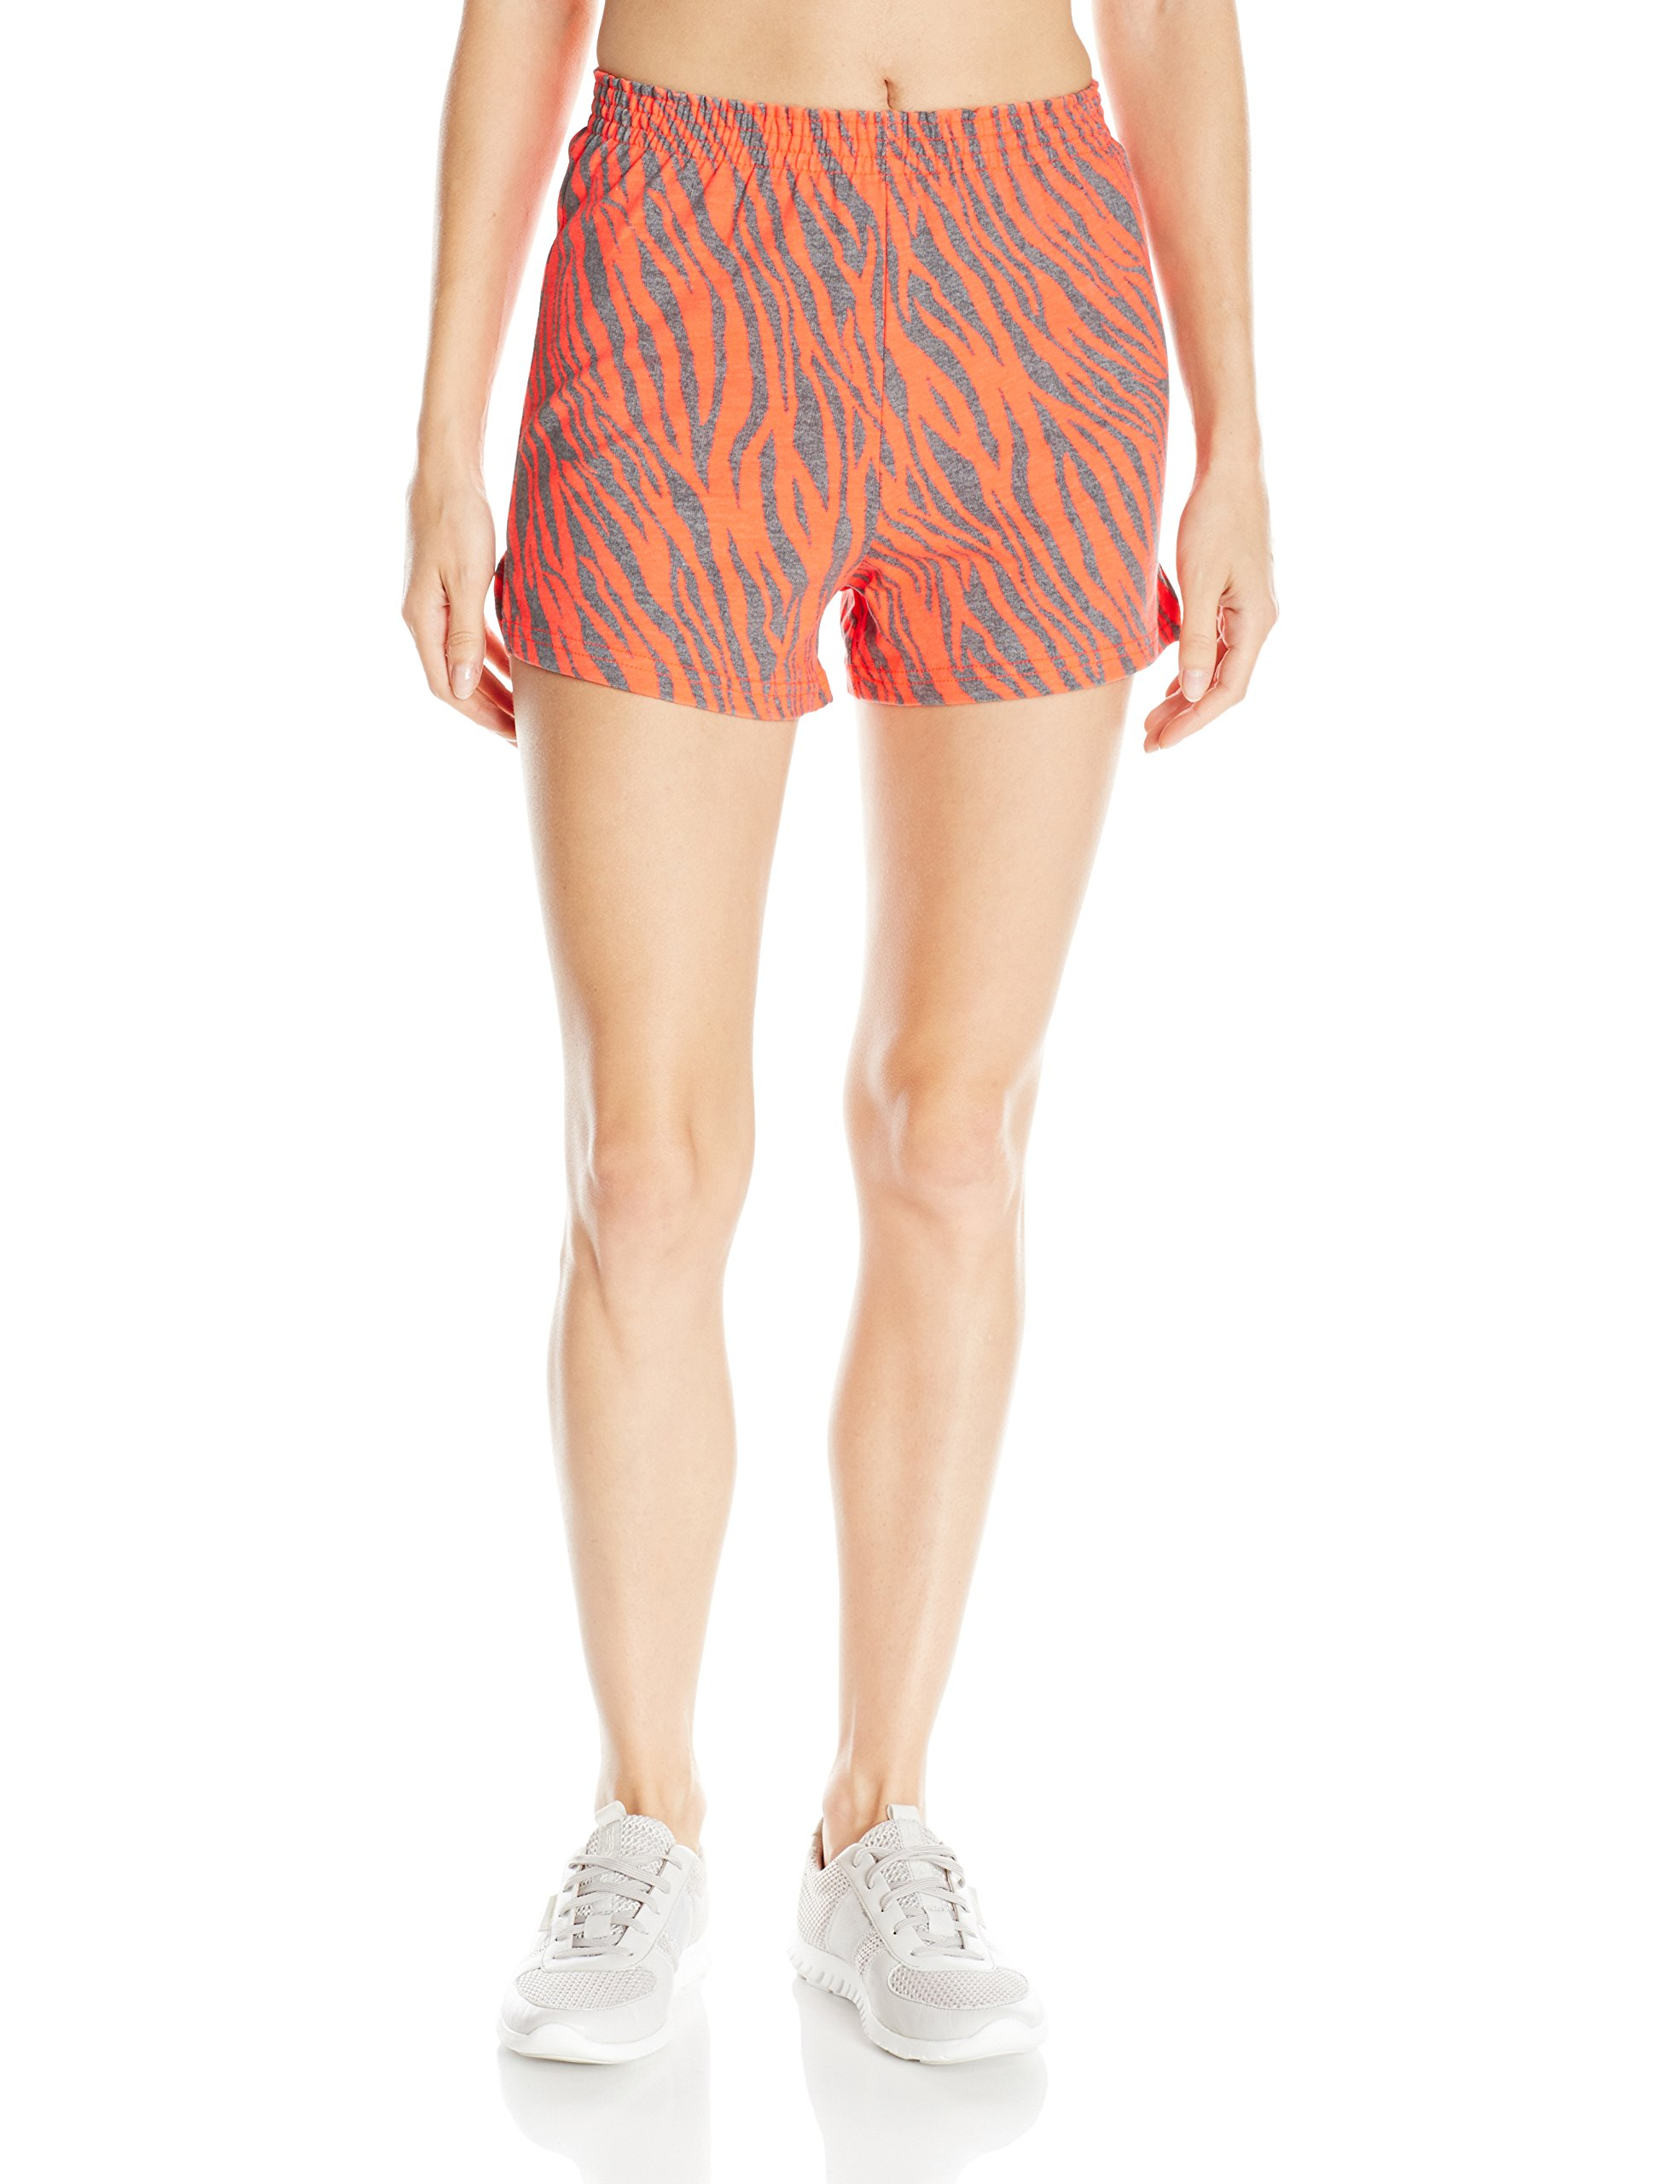 Soffe Women's Jr Printed Short Cctn, Fiery Coral/Zebra, Small by Soffe